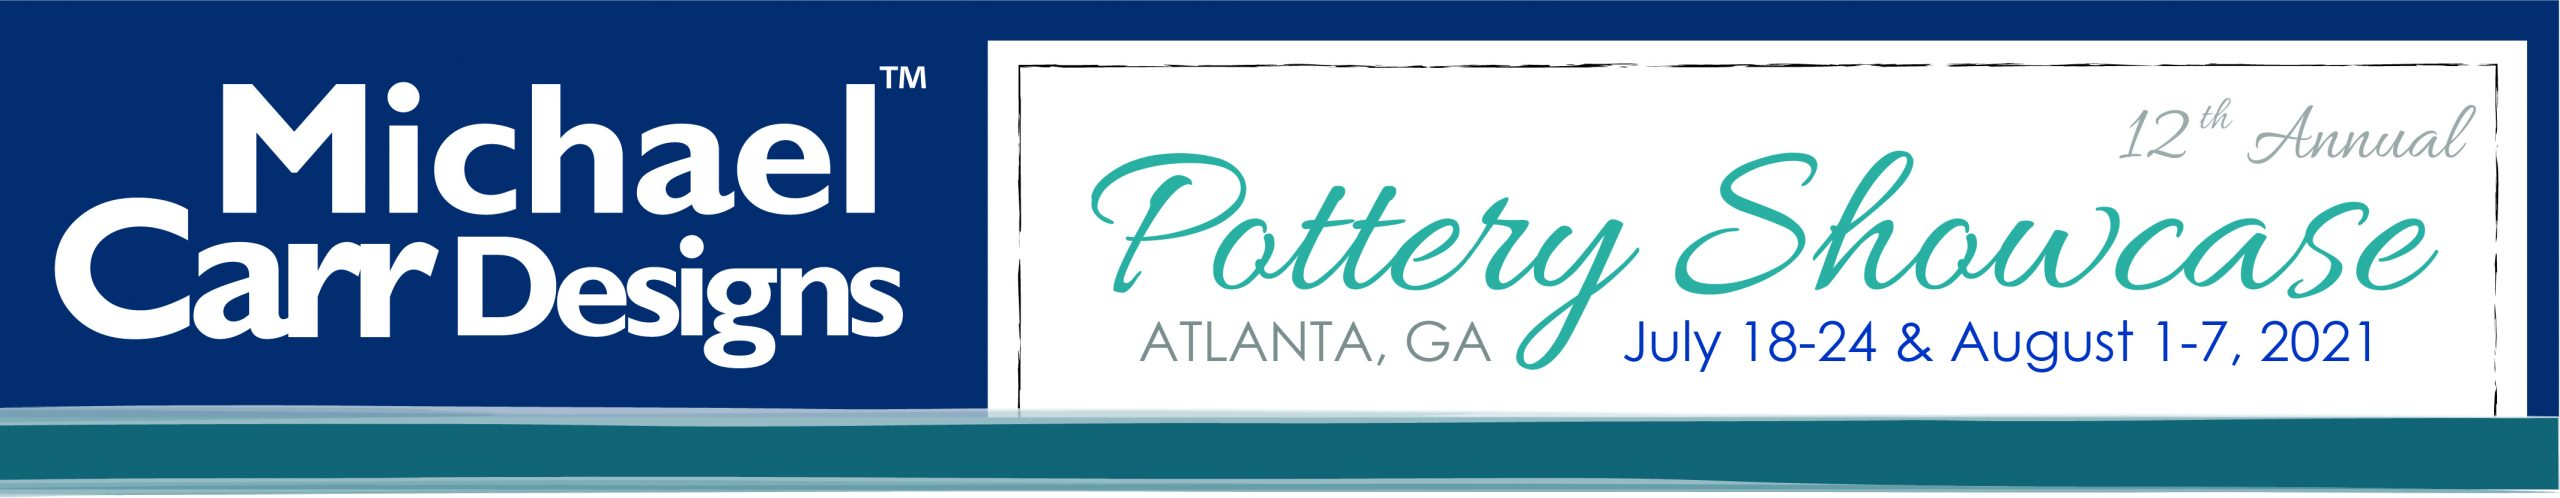 Michael Carr Pottery Showcase Information: July 18th - 24th and August 1st - 7th in Atlanta, GA